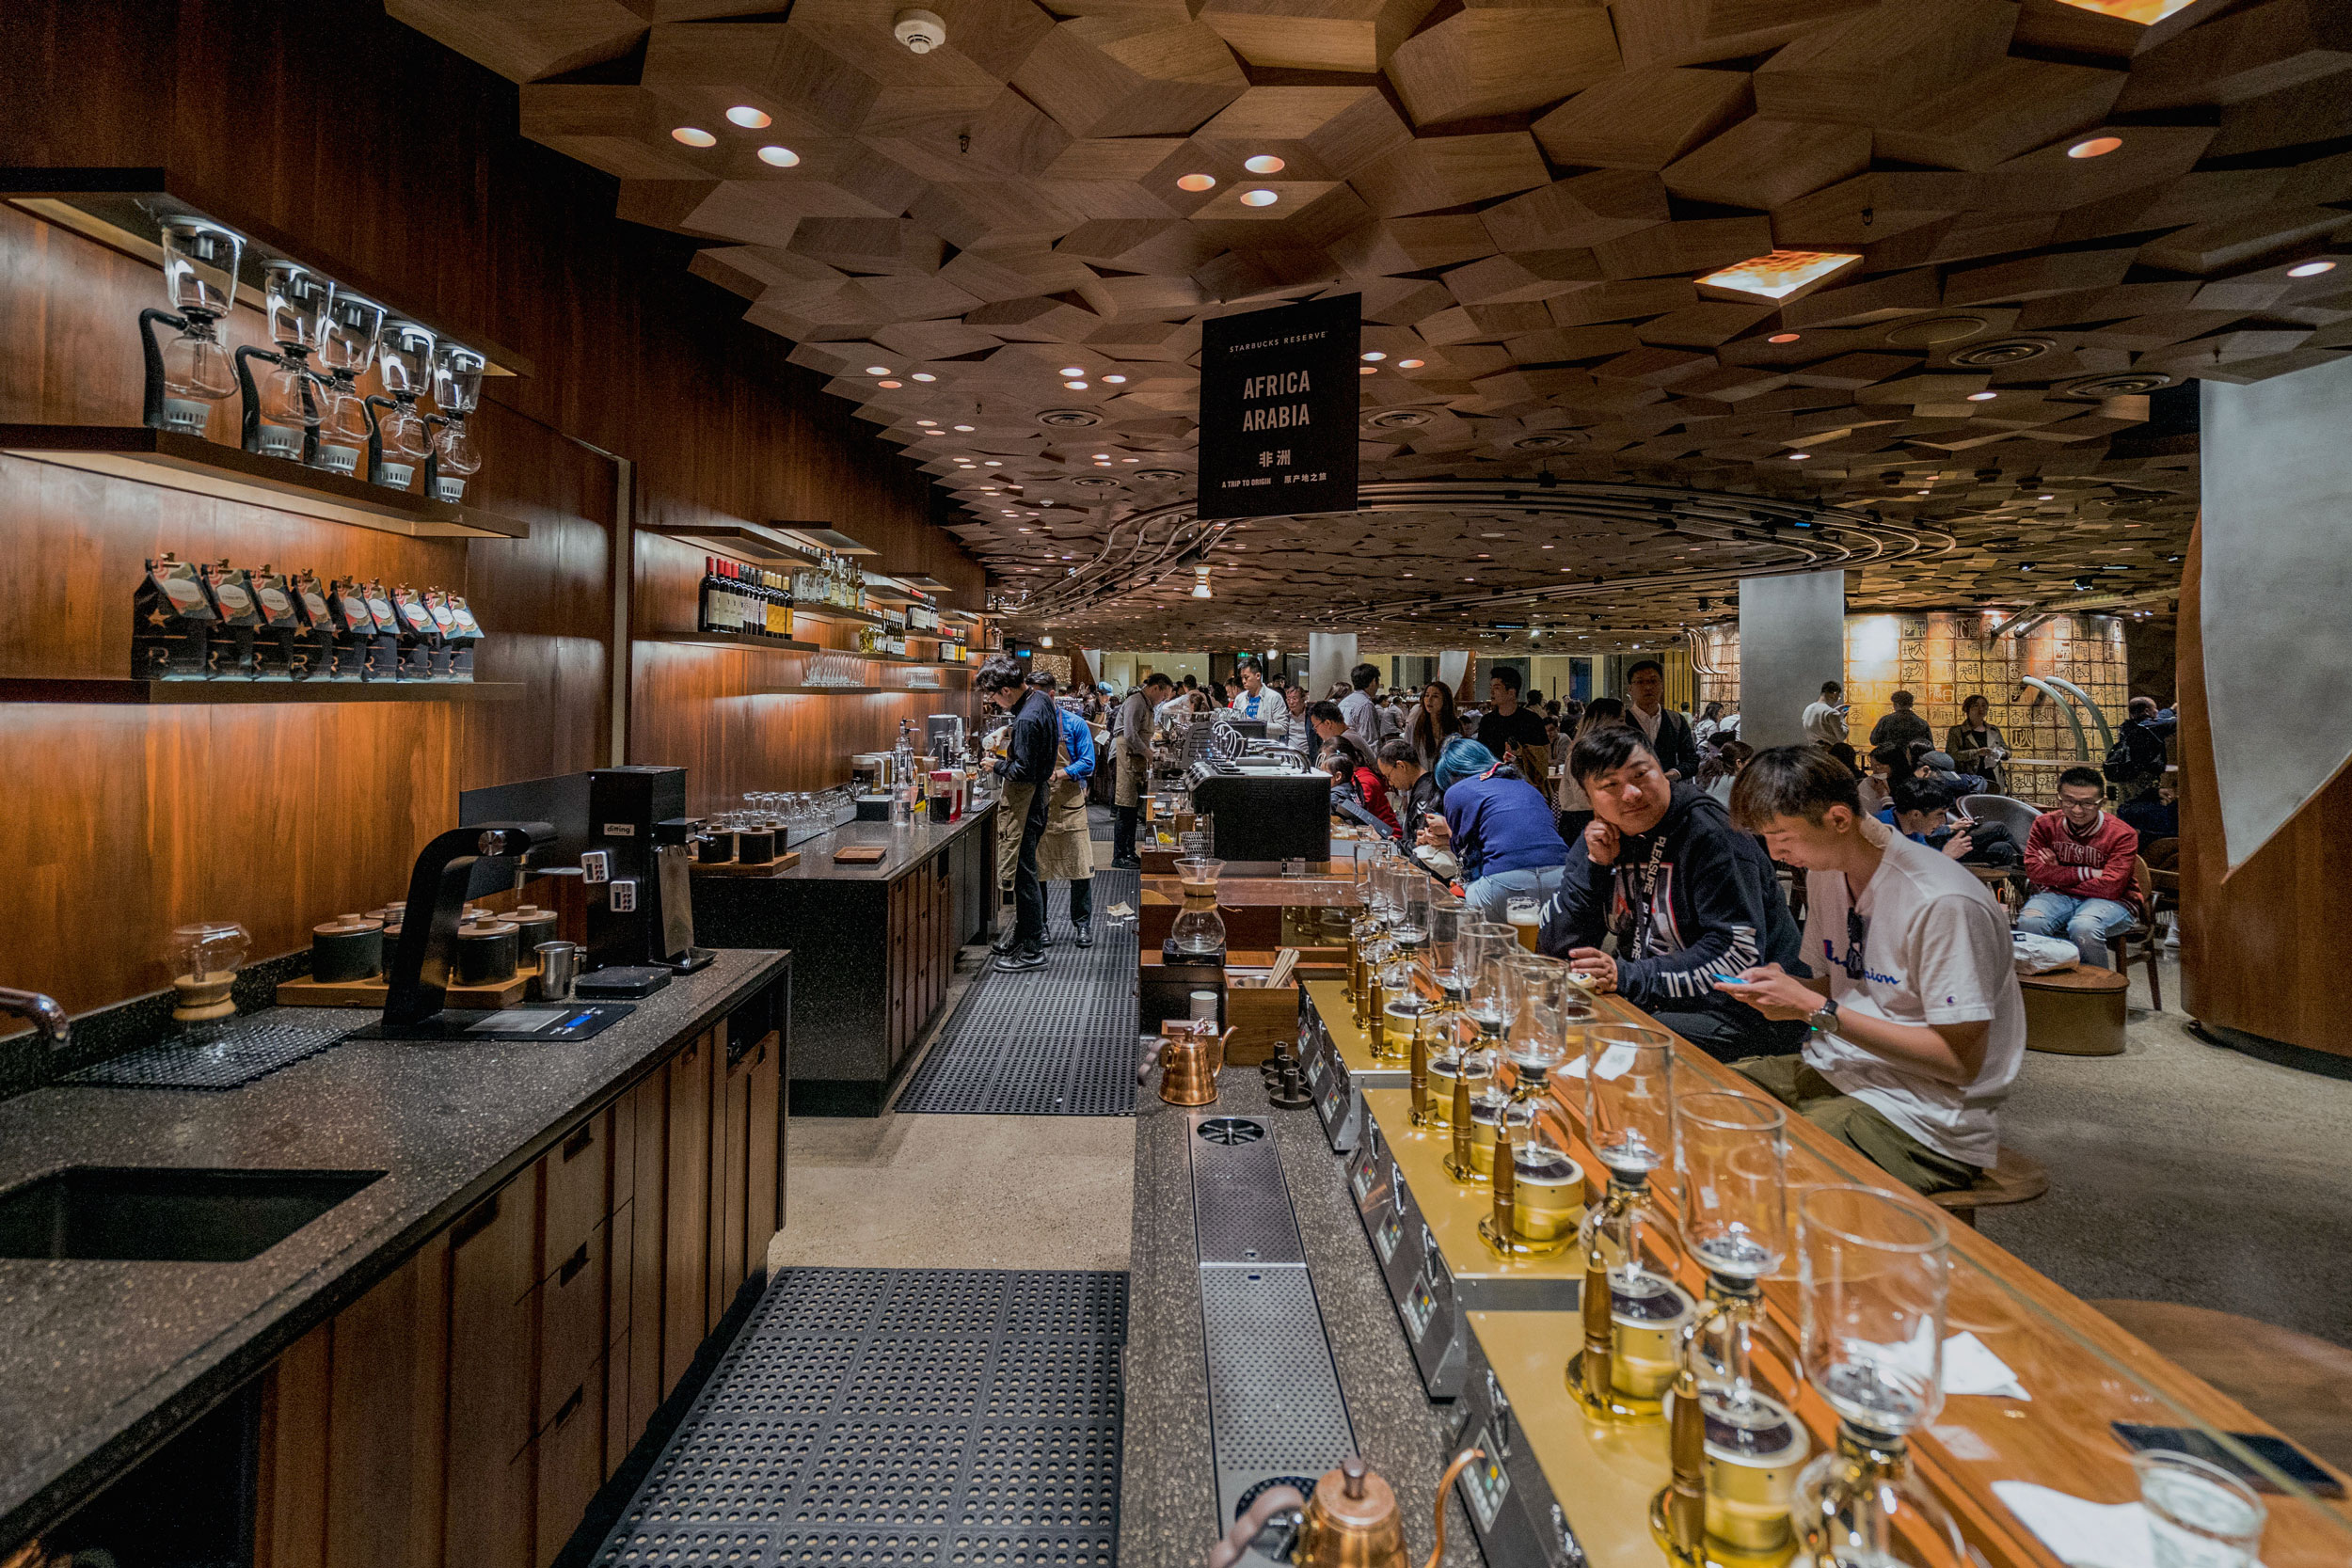 Brew station and coffee bar on the second floor of Starbucks Reserve Shanghai Roastery